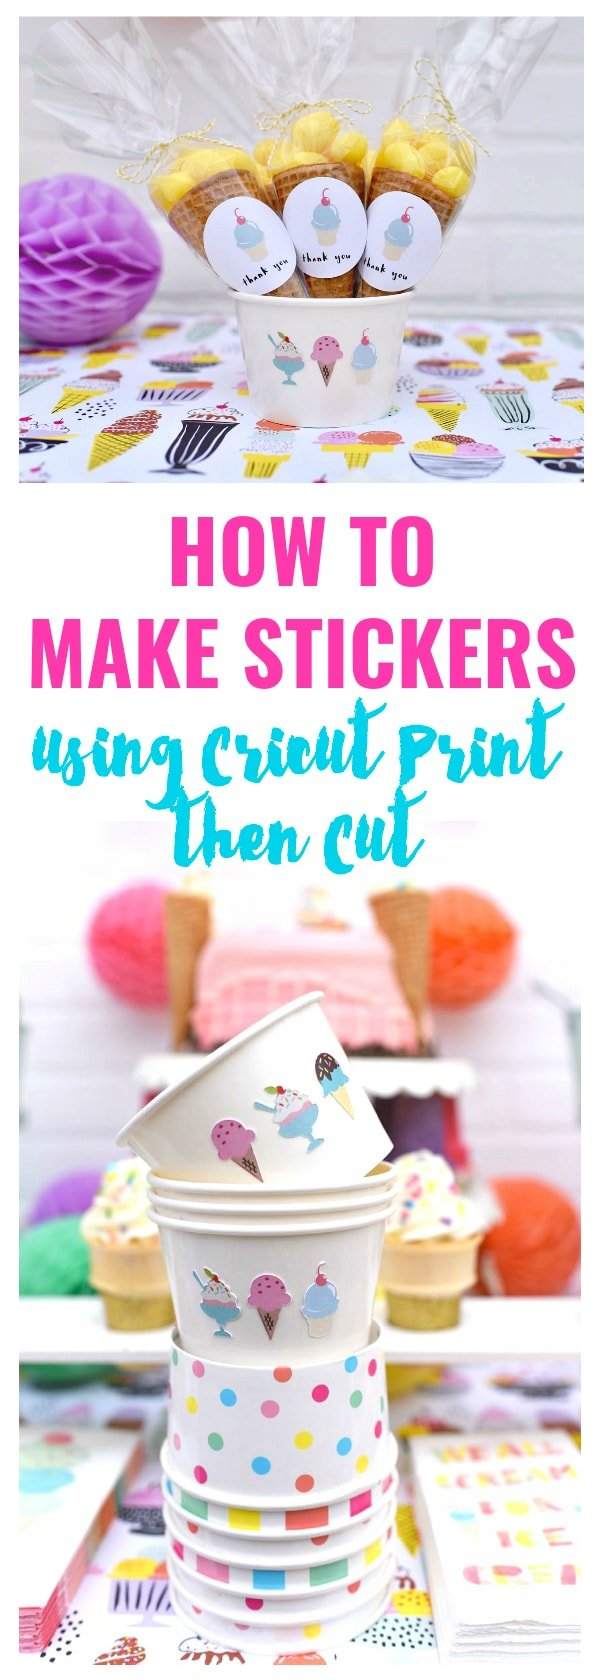 how to make stickers using cricut print then cut - make life lovely